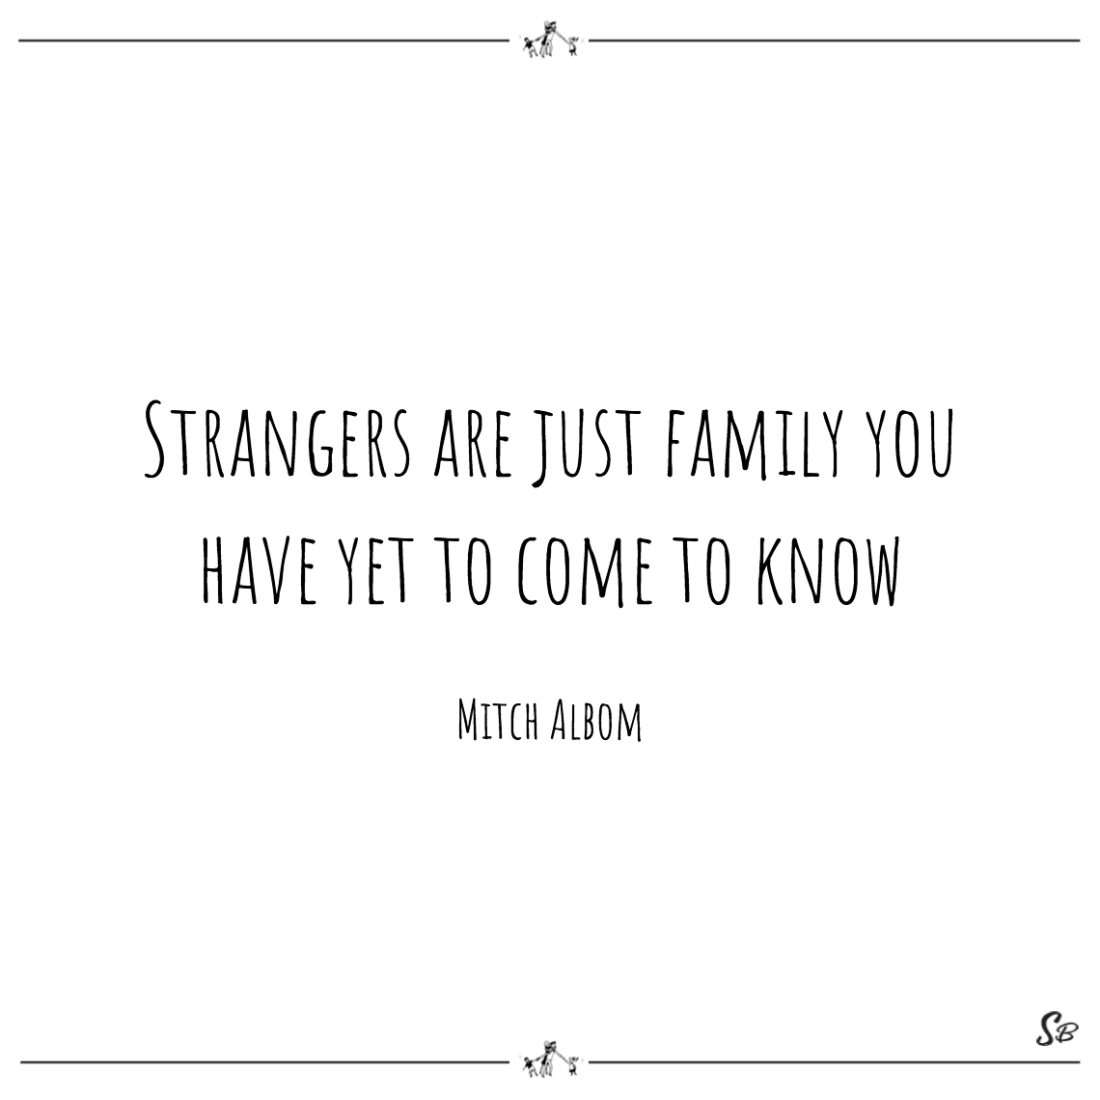 Strangers-are-just-family-you-have-yet-to-come-to-know-Mitch-Albom